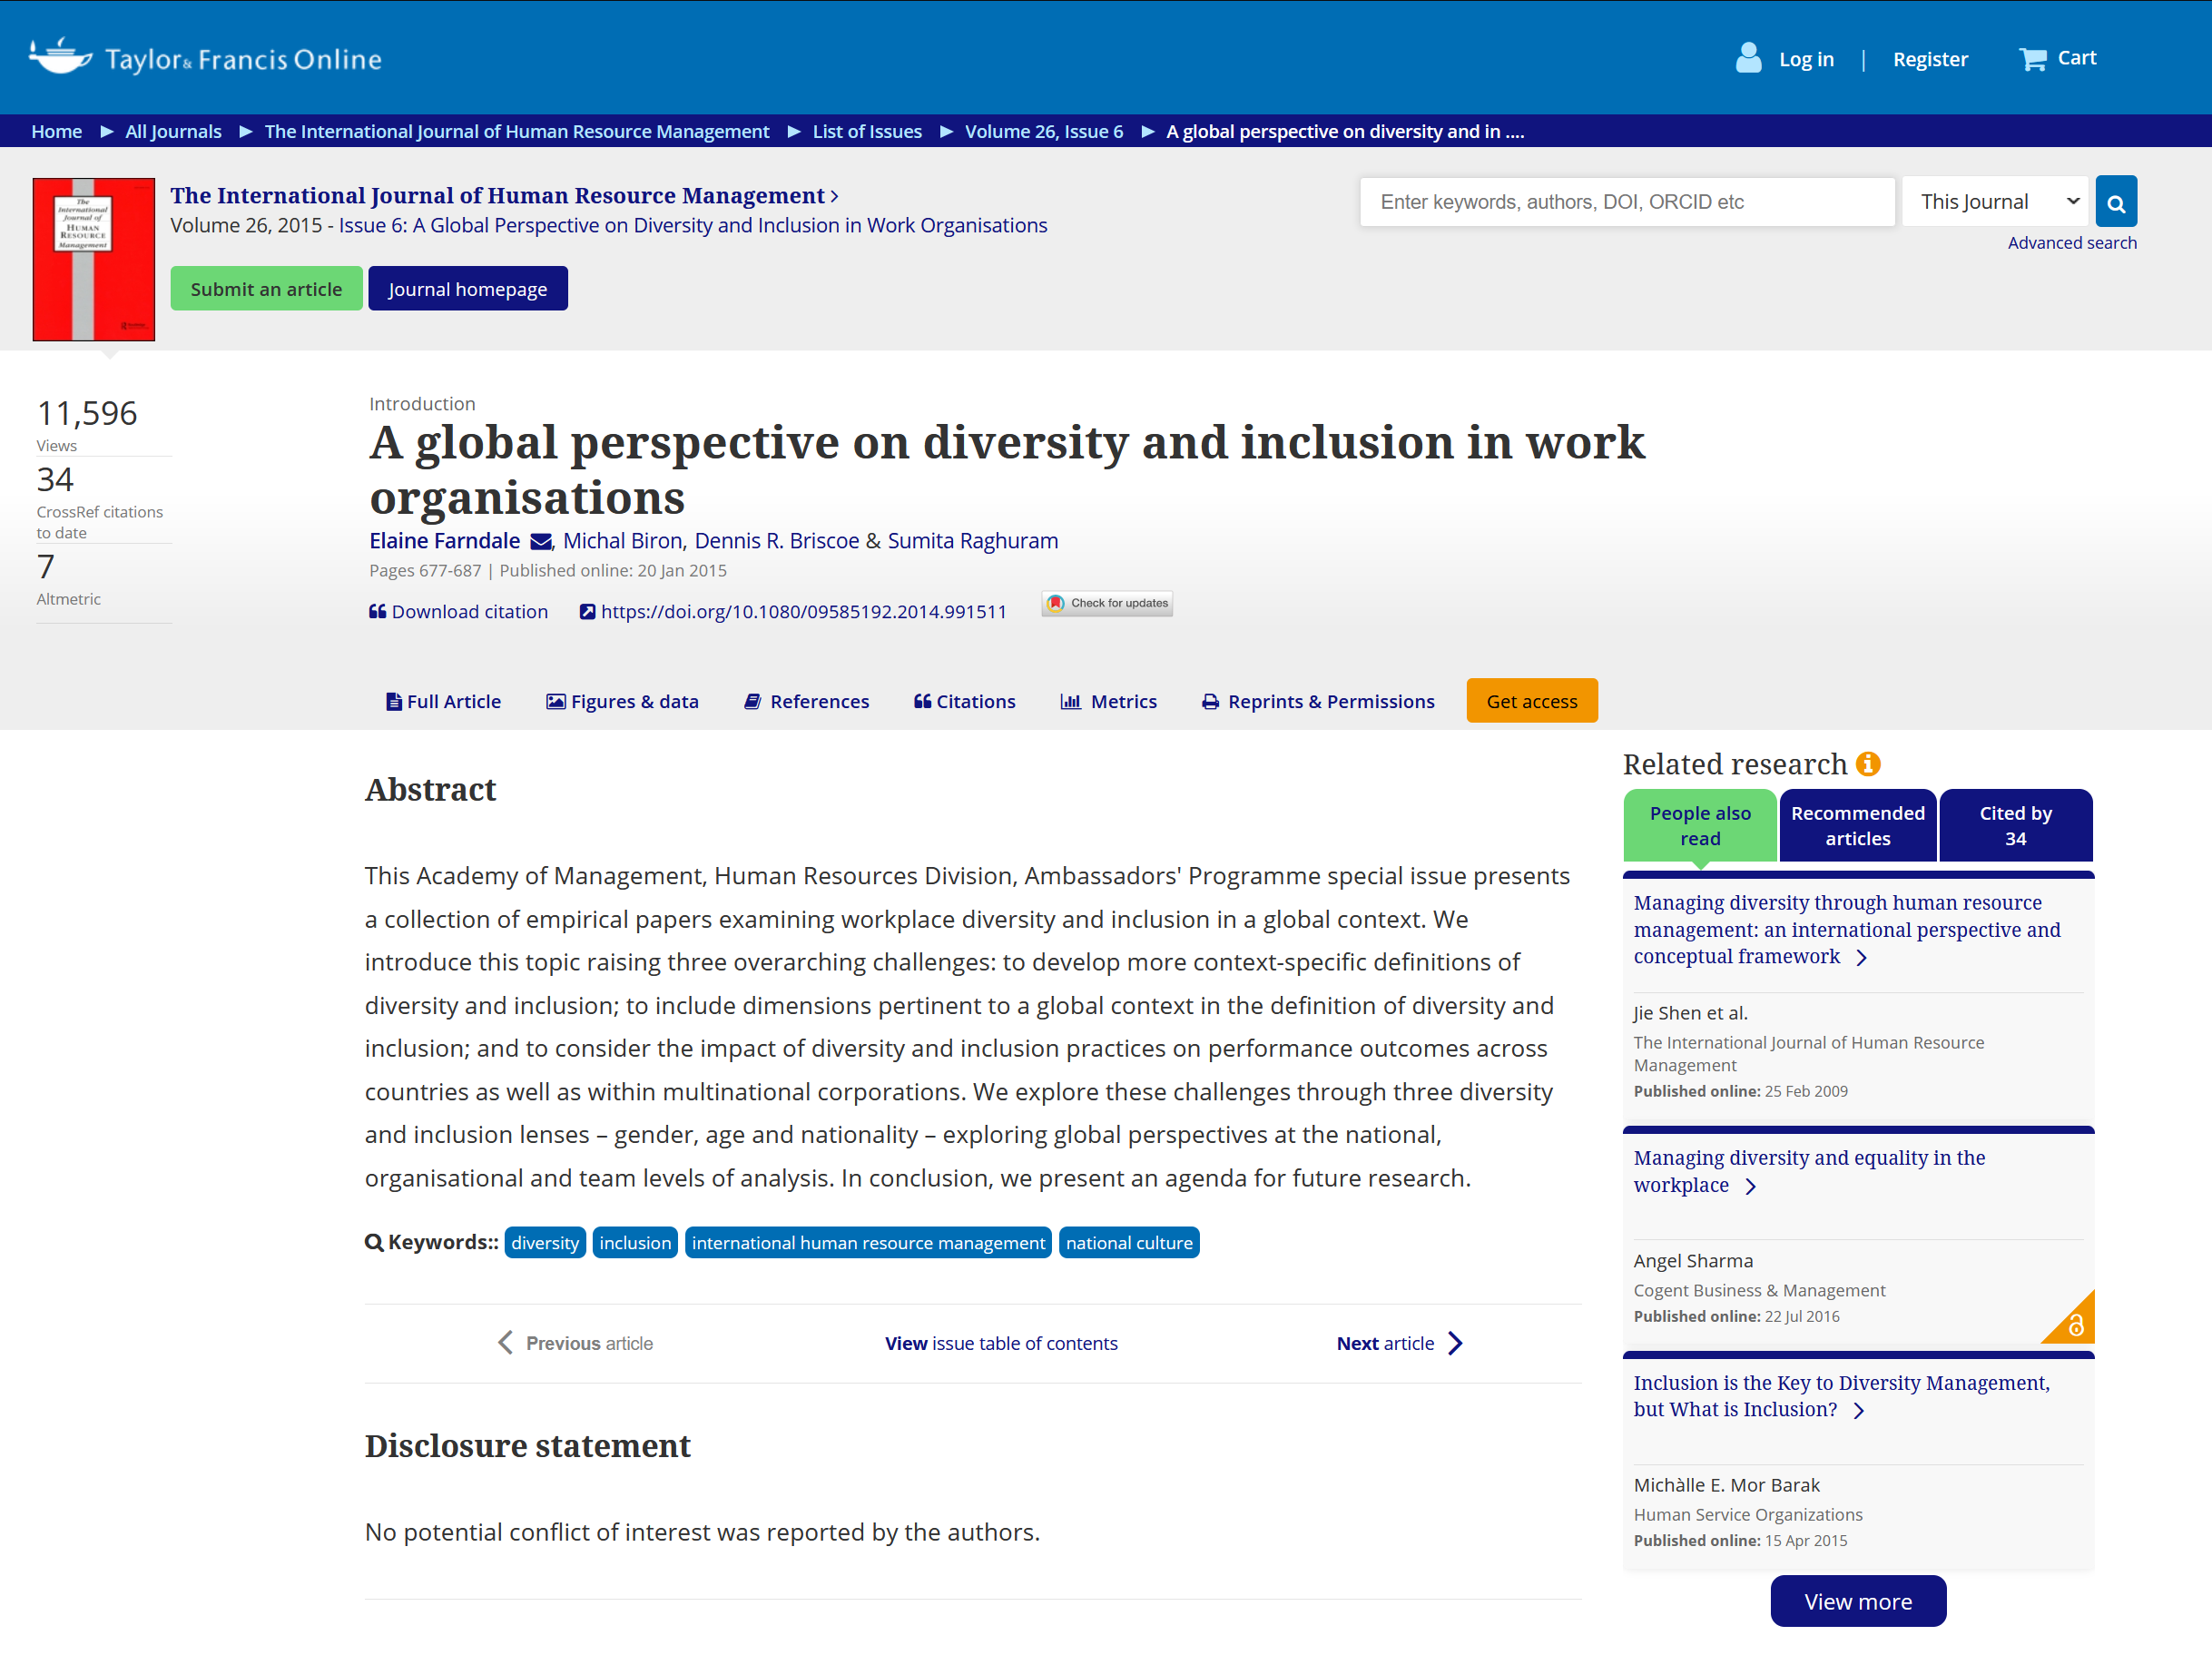 a global perspective on diversity and inclusion in work organisations A global perspective on diversity and inclusion in work organisations A global perspective on diversity and inclusion in work organisations capa